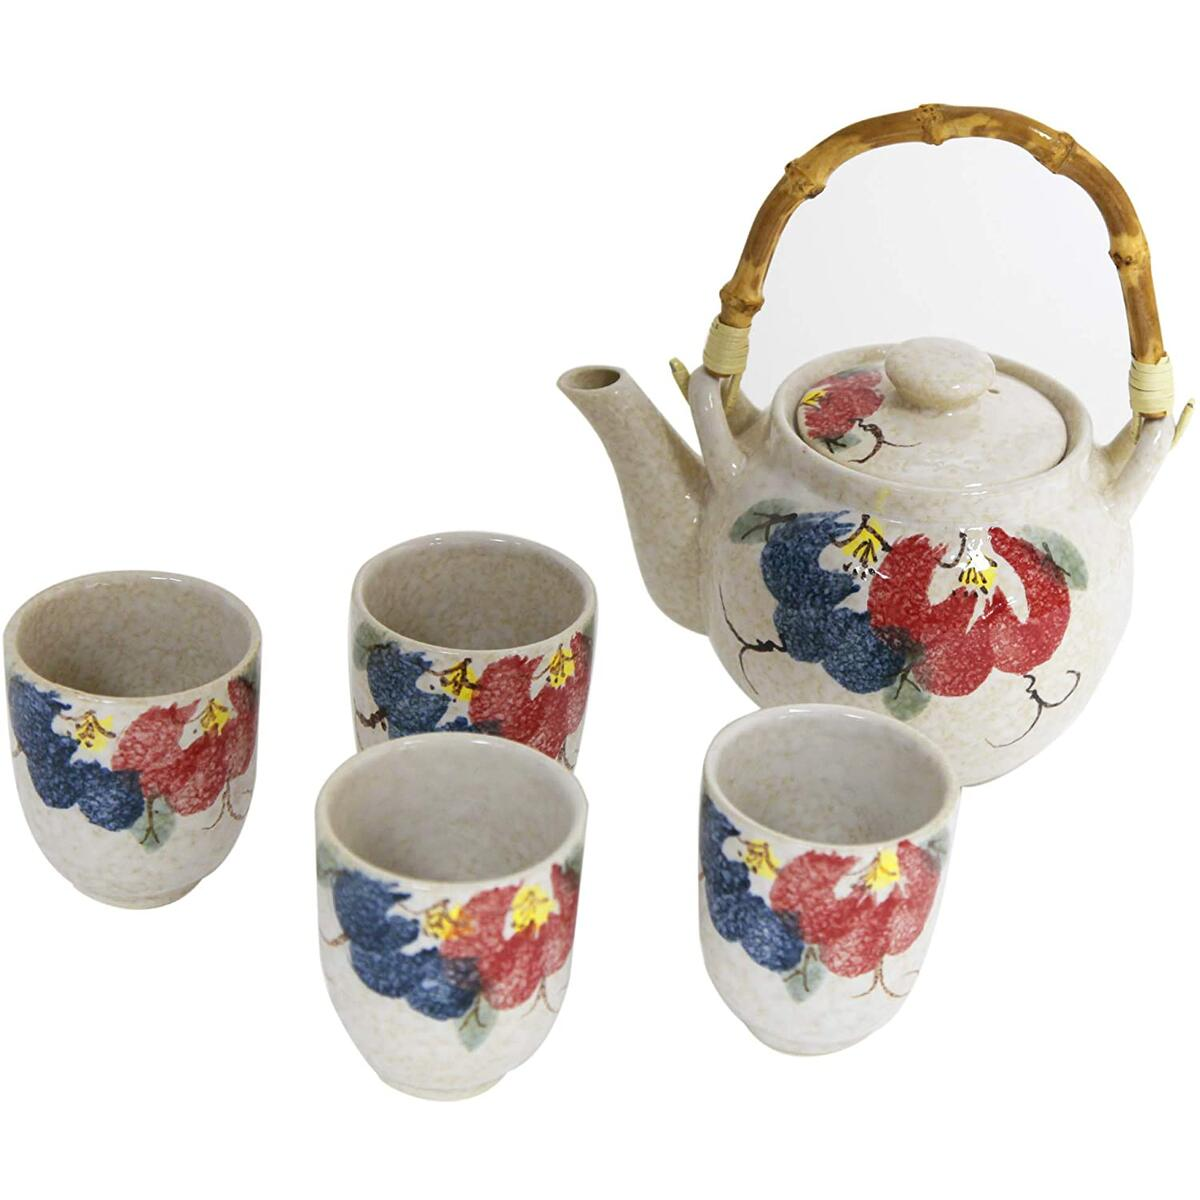 Ceramic Tea Pot and Cups Set